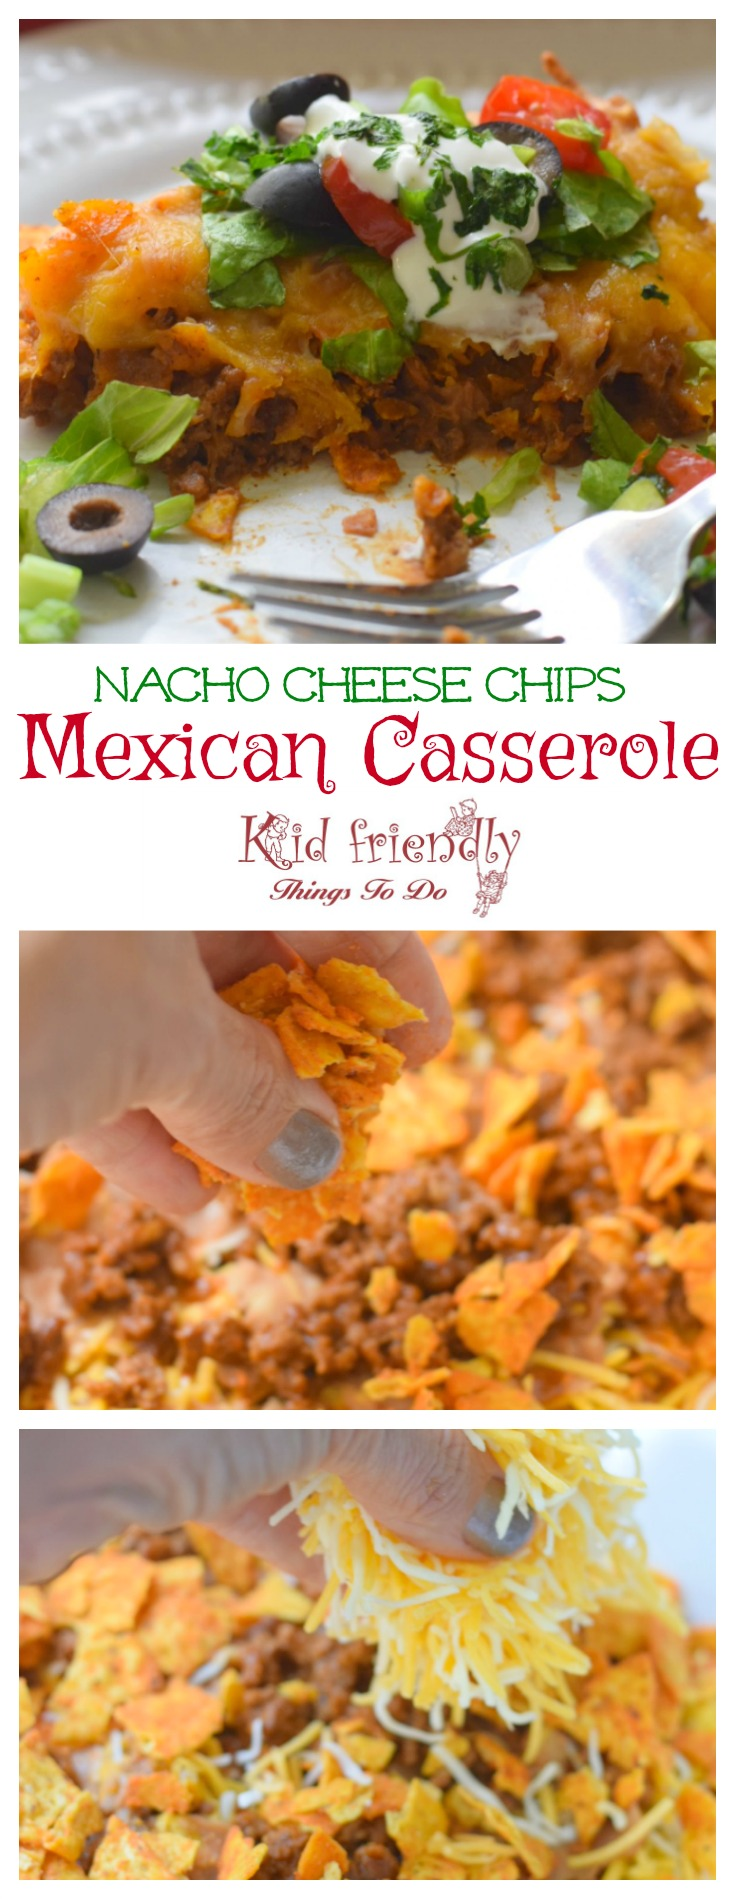 Nacho Cheese Chips (like Dorito) Mexican Taco Casserole made with Ground beef - easy and delicious. Perfect for Cinco De Mayo or a family dinner - www.kidfriendlythingstodo.com